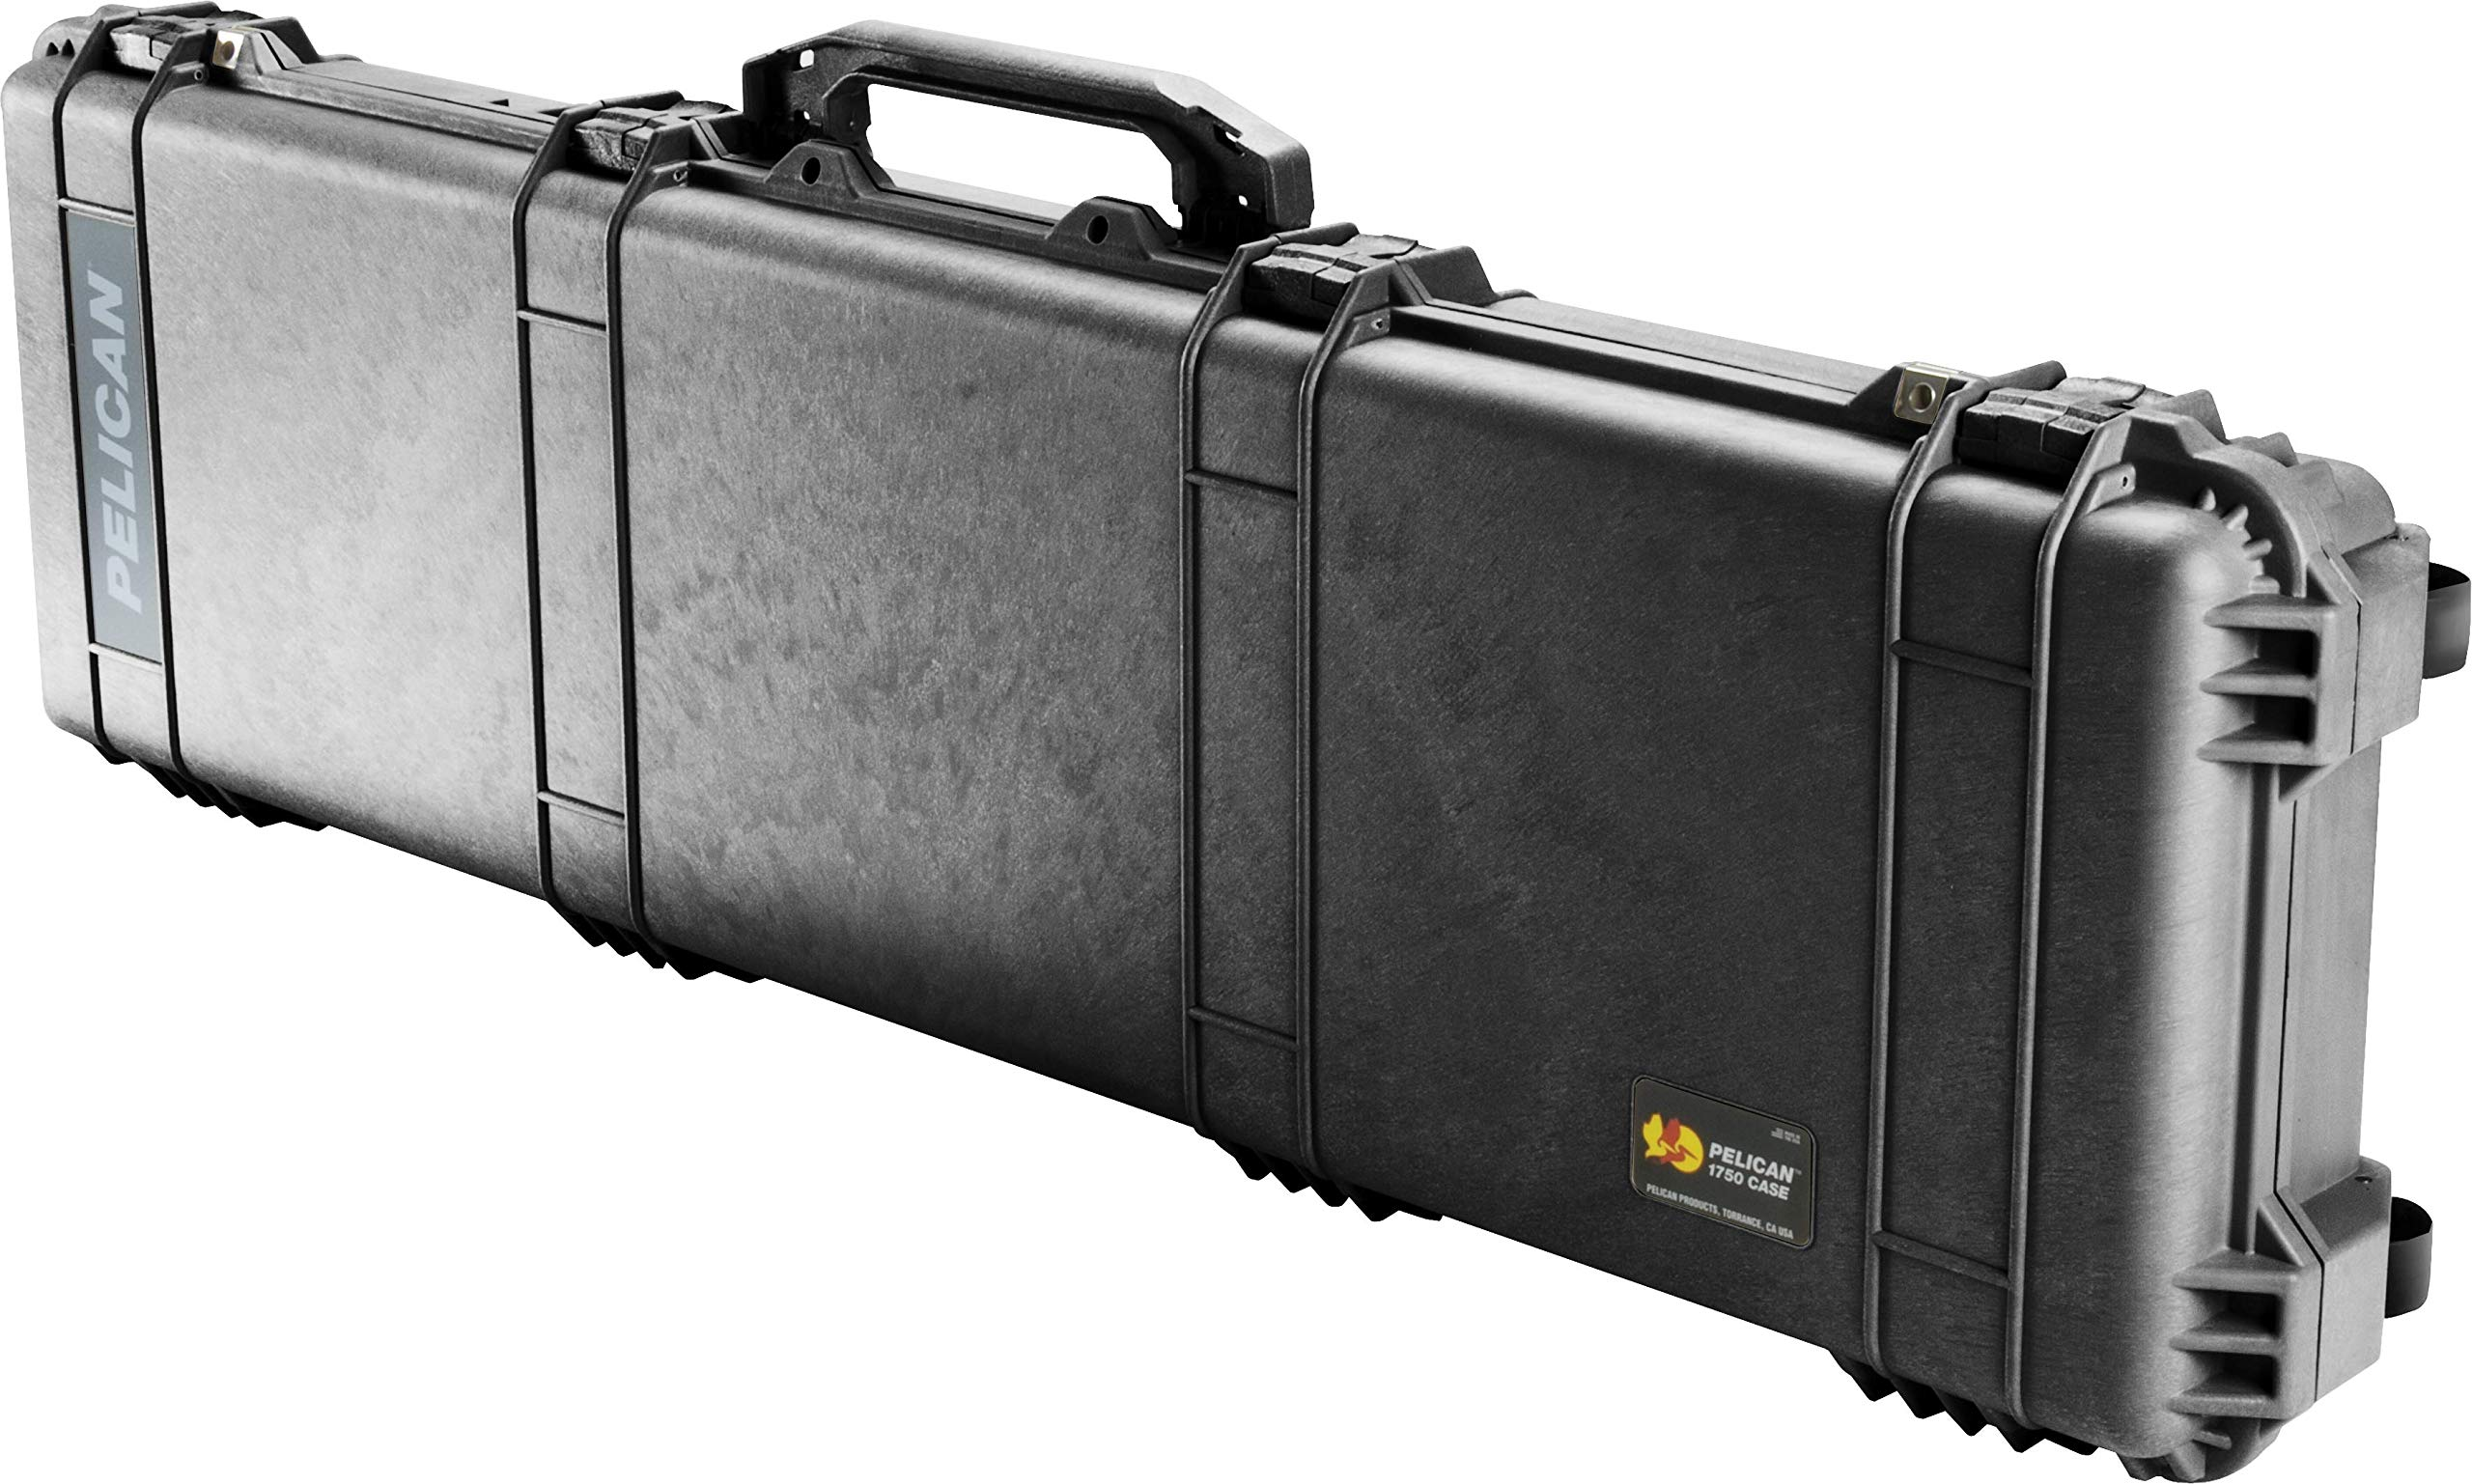 Pelican 1750 Rifle Case With Foam (Black) by Pelican